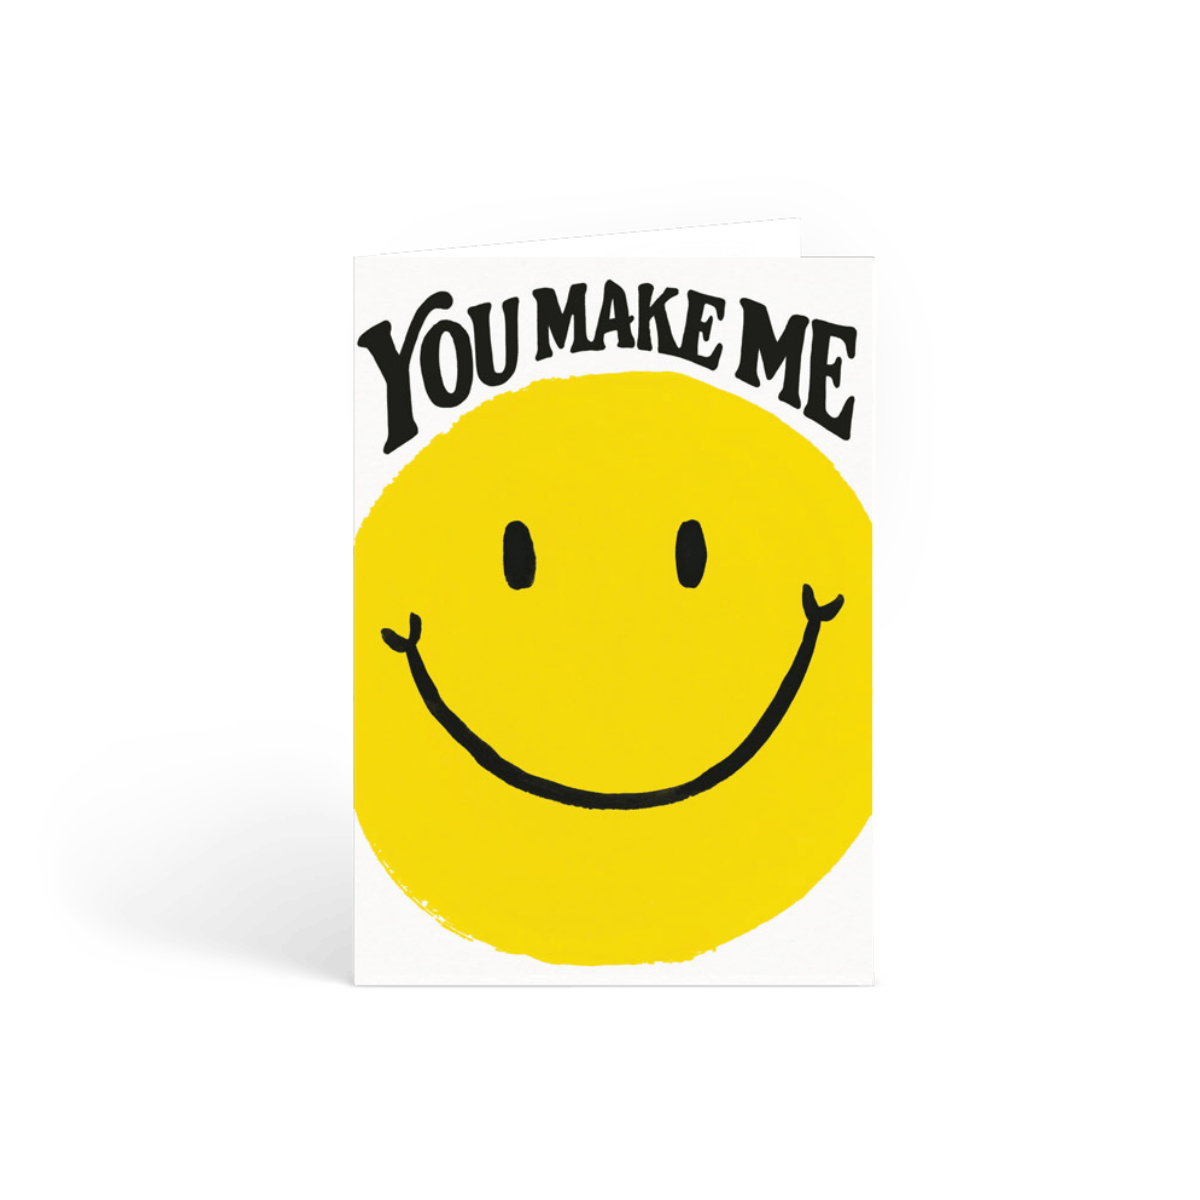 Https%3a%2f%2fwww.papier.com%2fproduct image%2f62490%2f2%2fyou make me smile 14786 front 1548152242.png?ixlib=rb 1.1